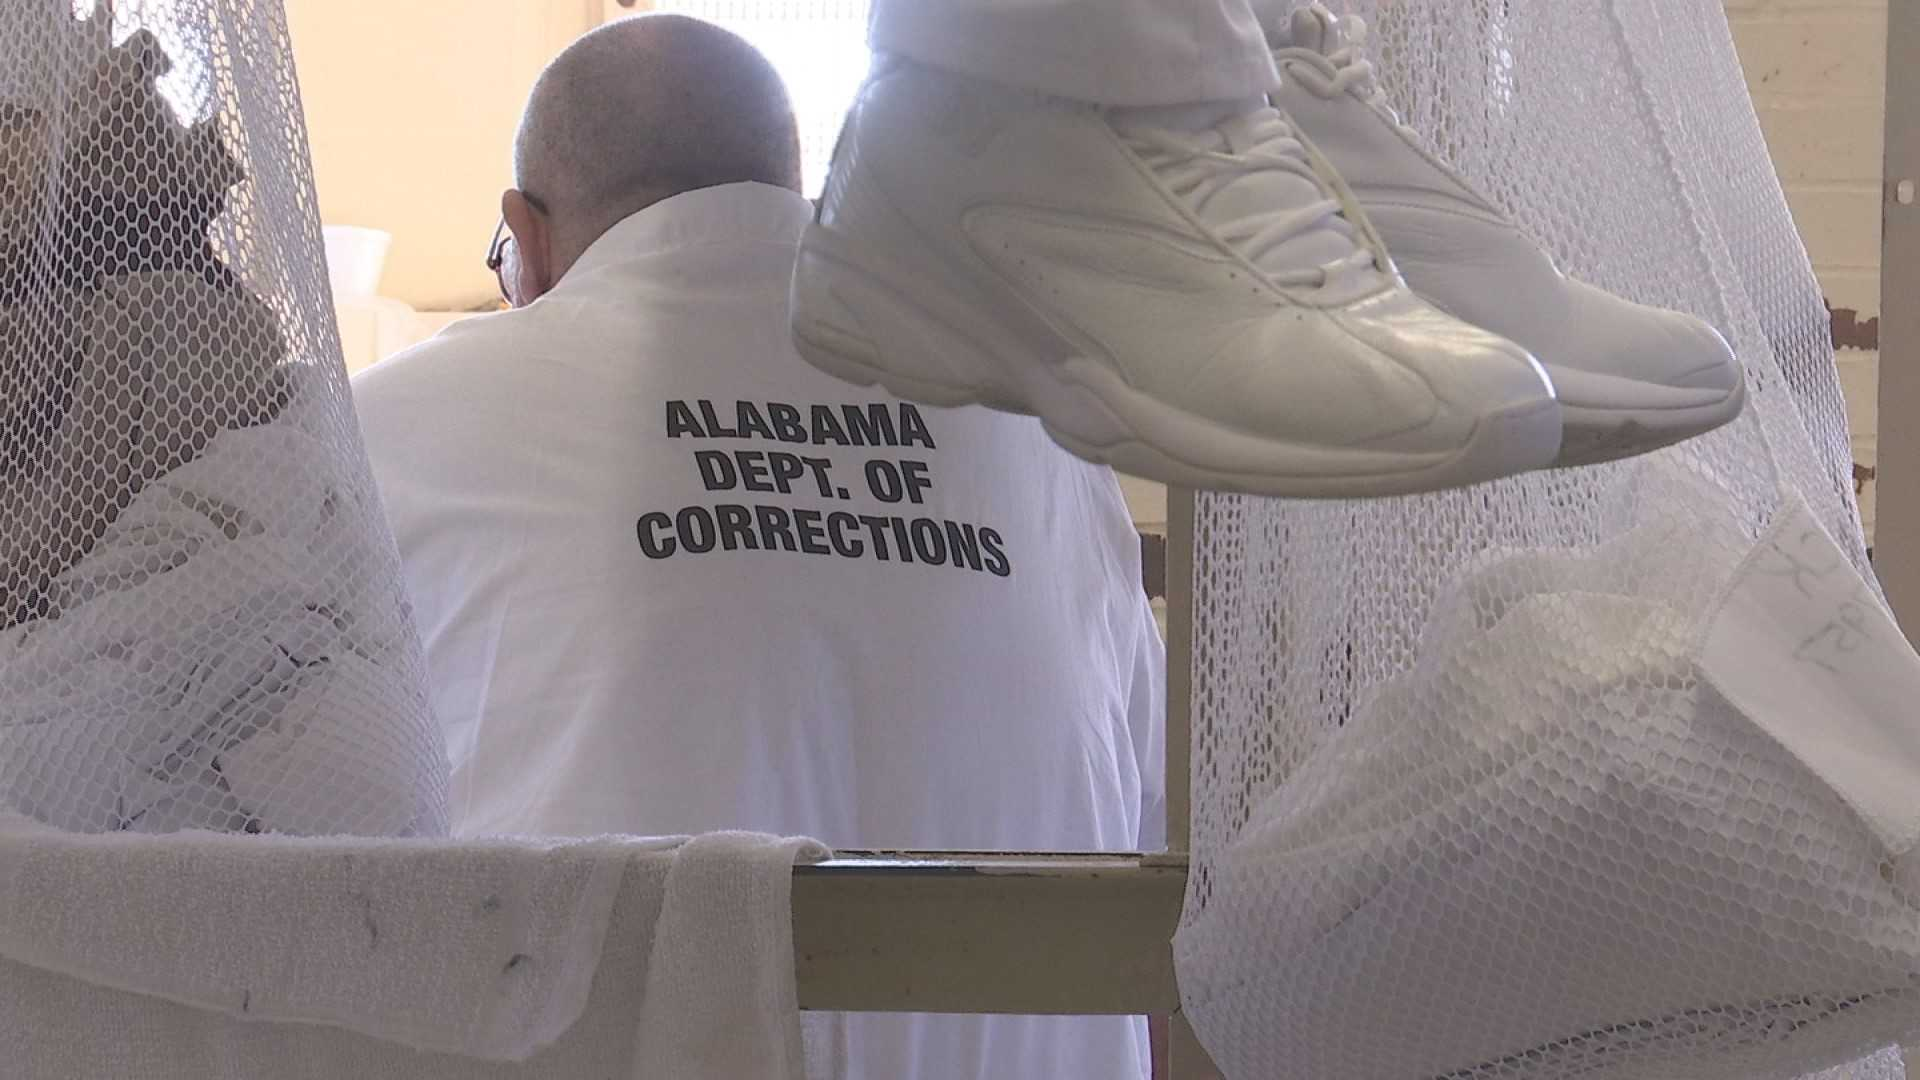 ALABAMA PRISON 3_1547675465136.jpeg-842137442.jpg